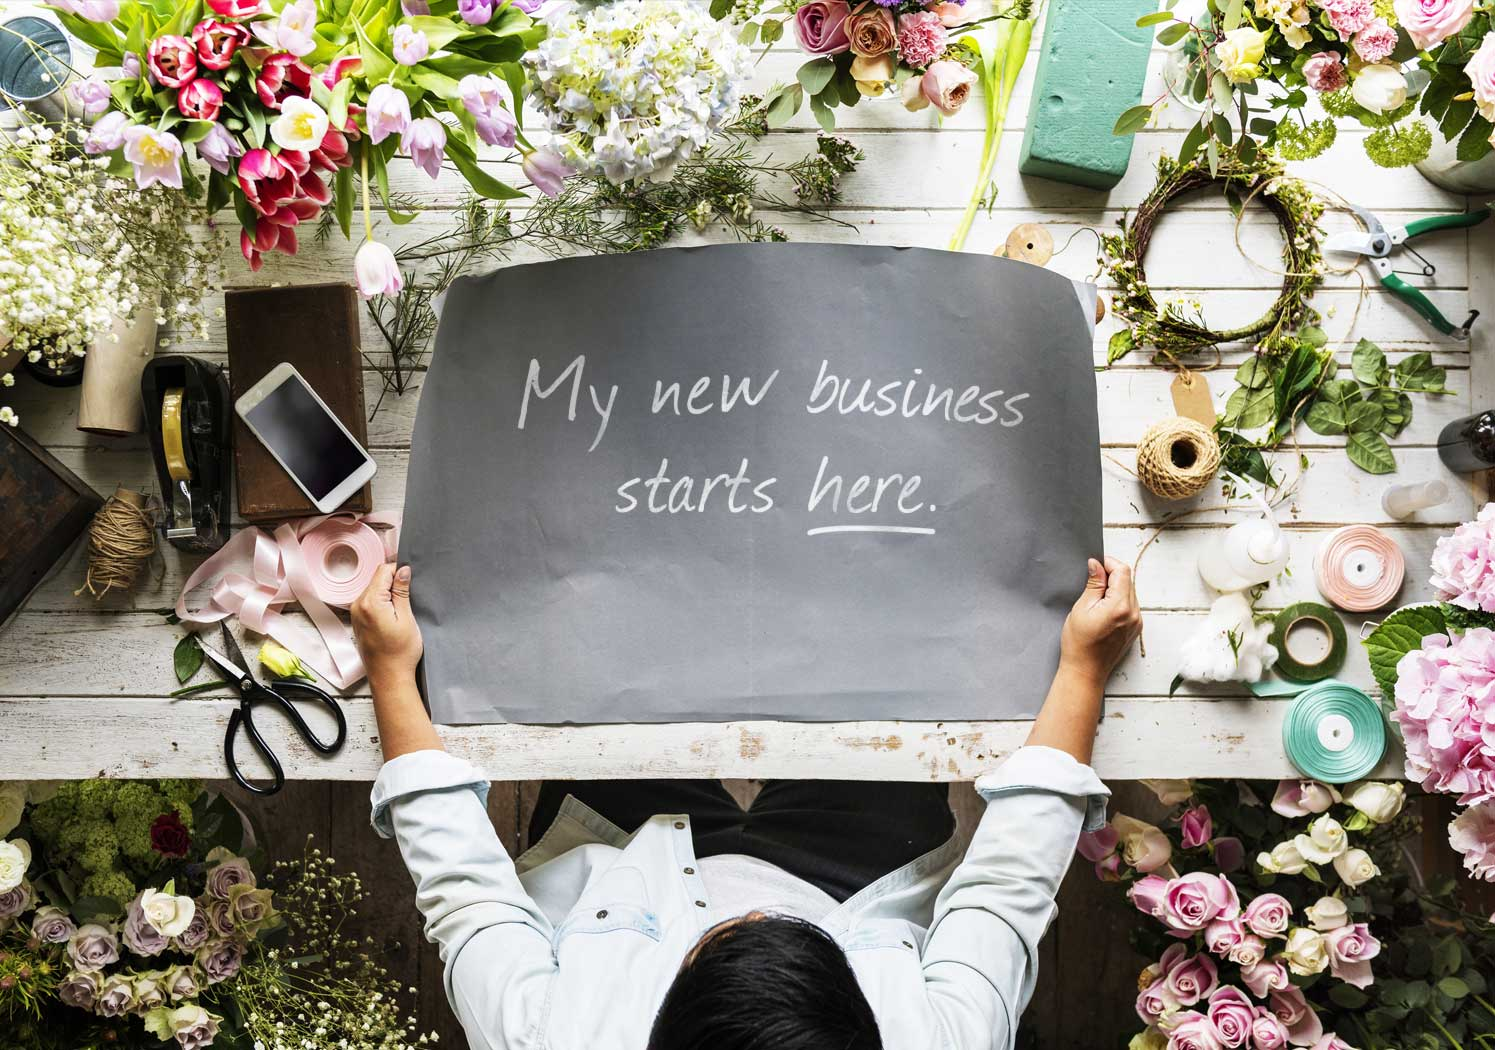 Starting A Business conceptual image